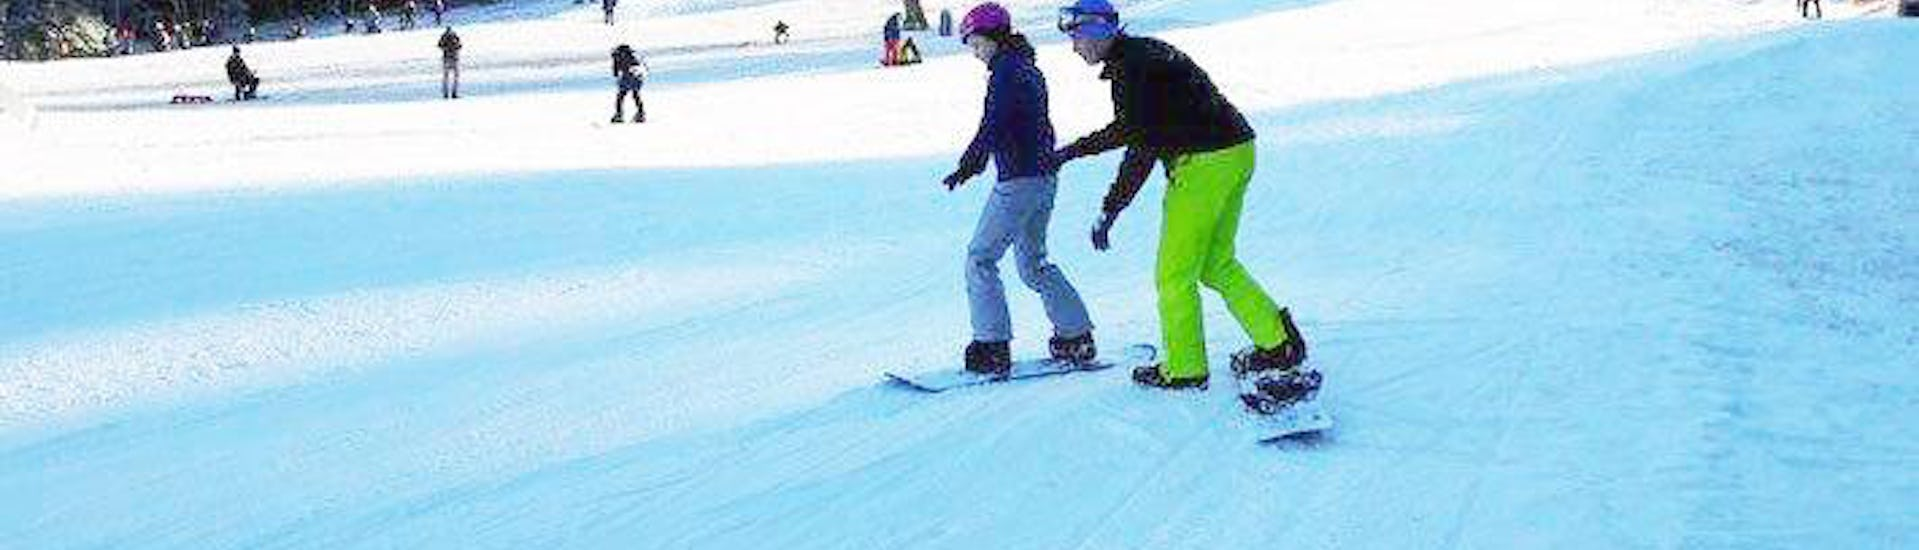 A young snowboarder is learning to snowboard during Private Snowboarding Lessons for Kids & Adults for All Levels with the ski school DSV Skischule Züschen.